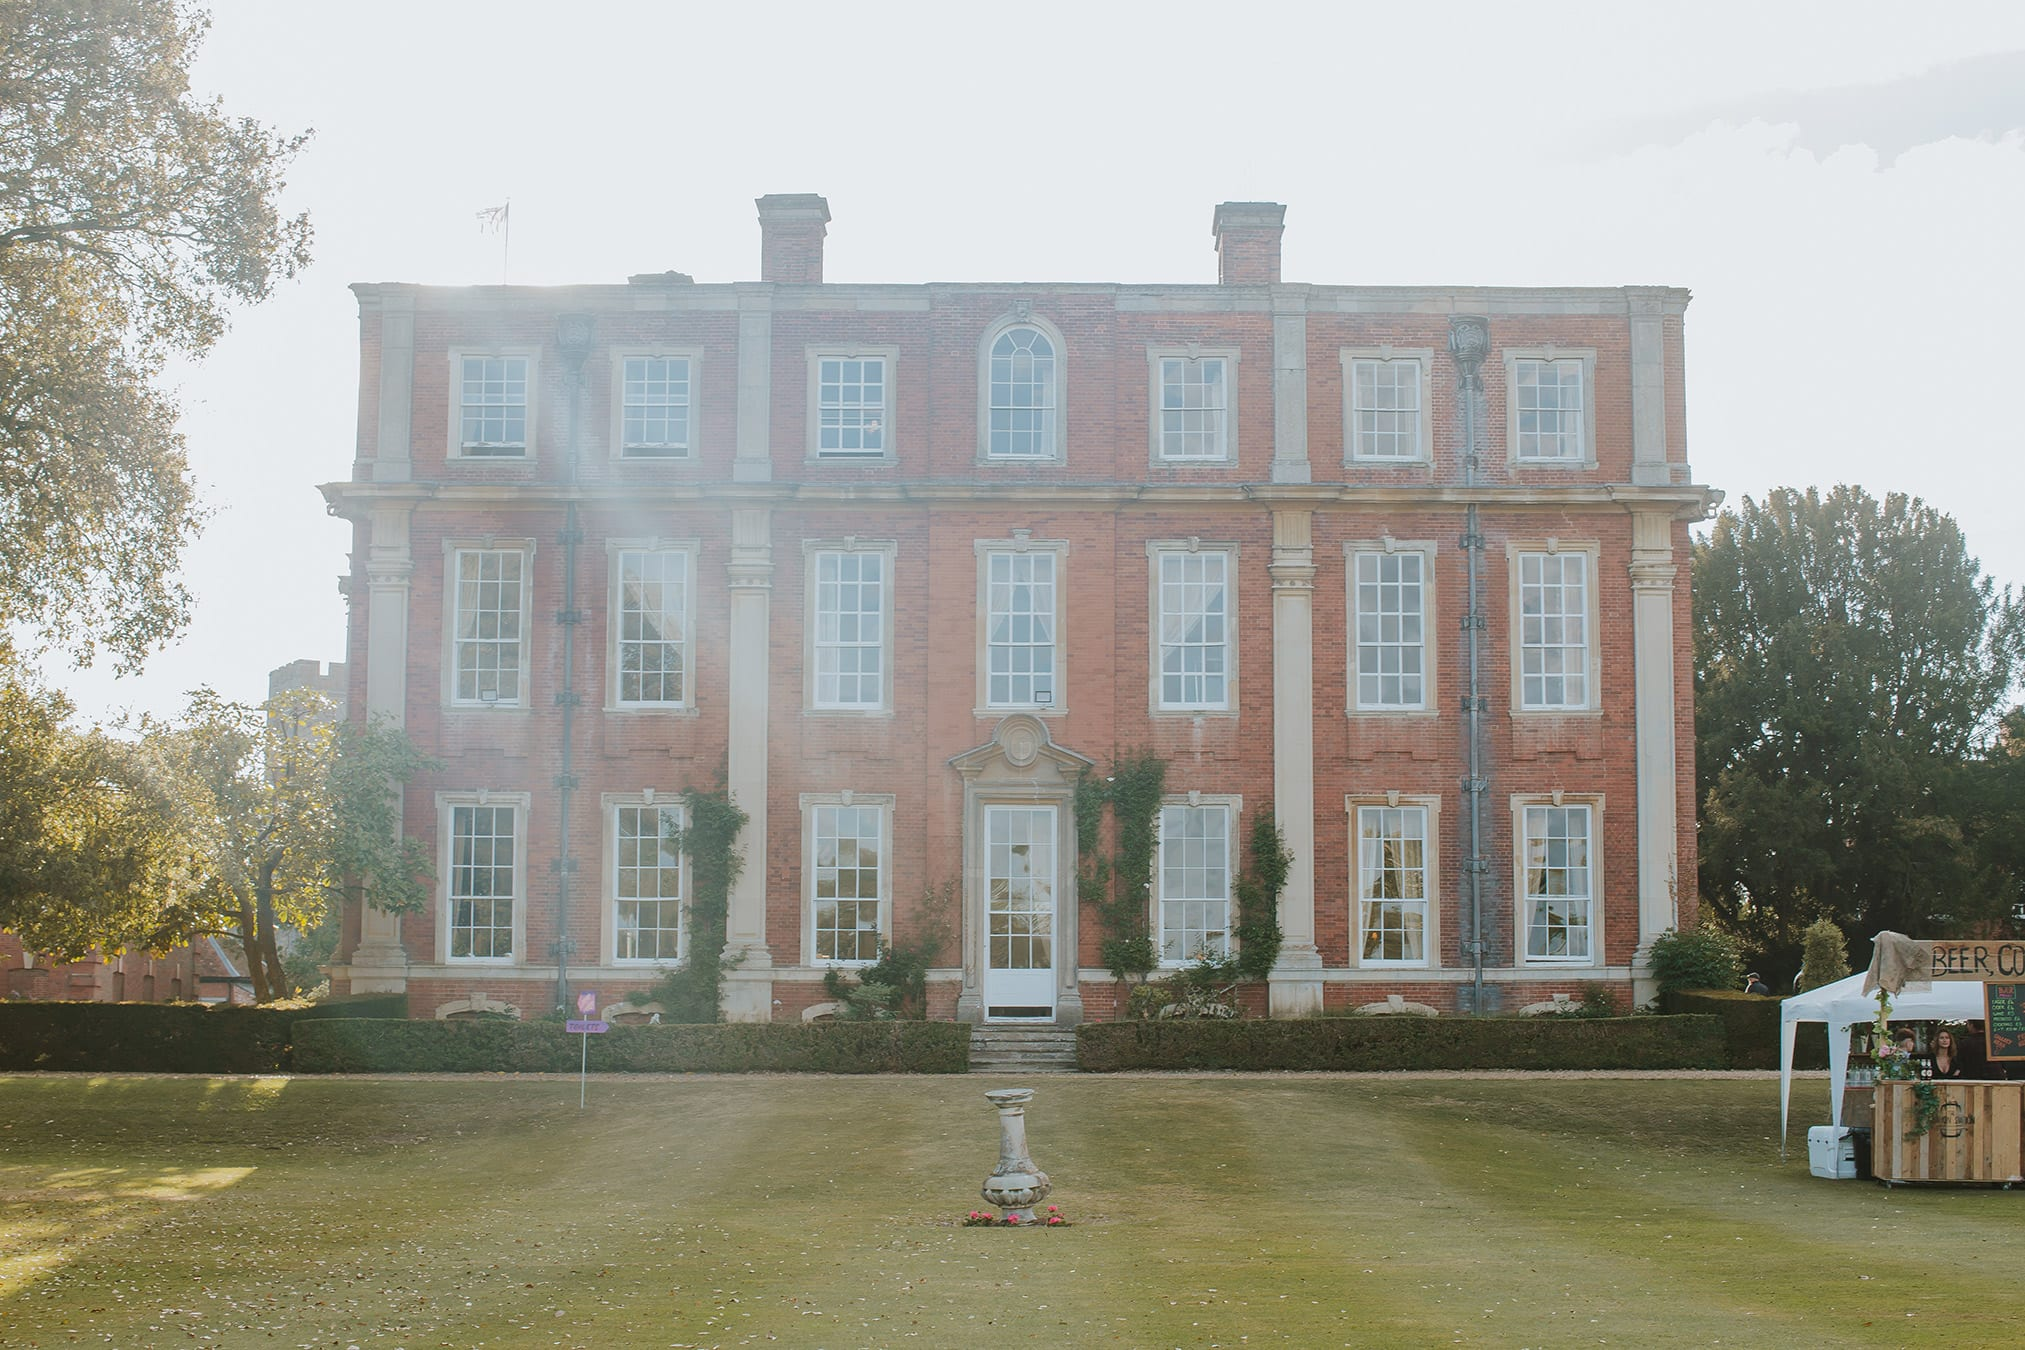 Open-air film screening at MK's Chicheley Hall